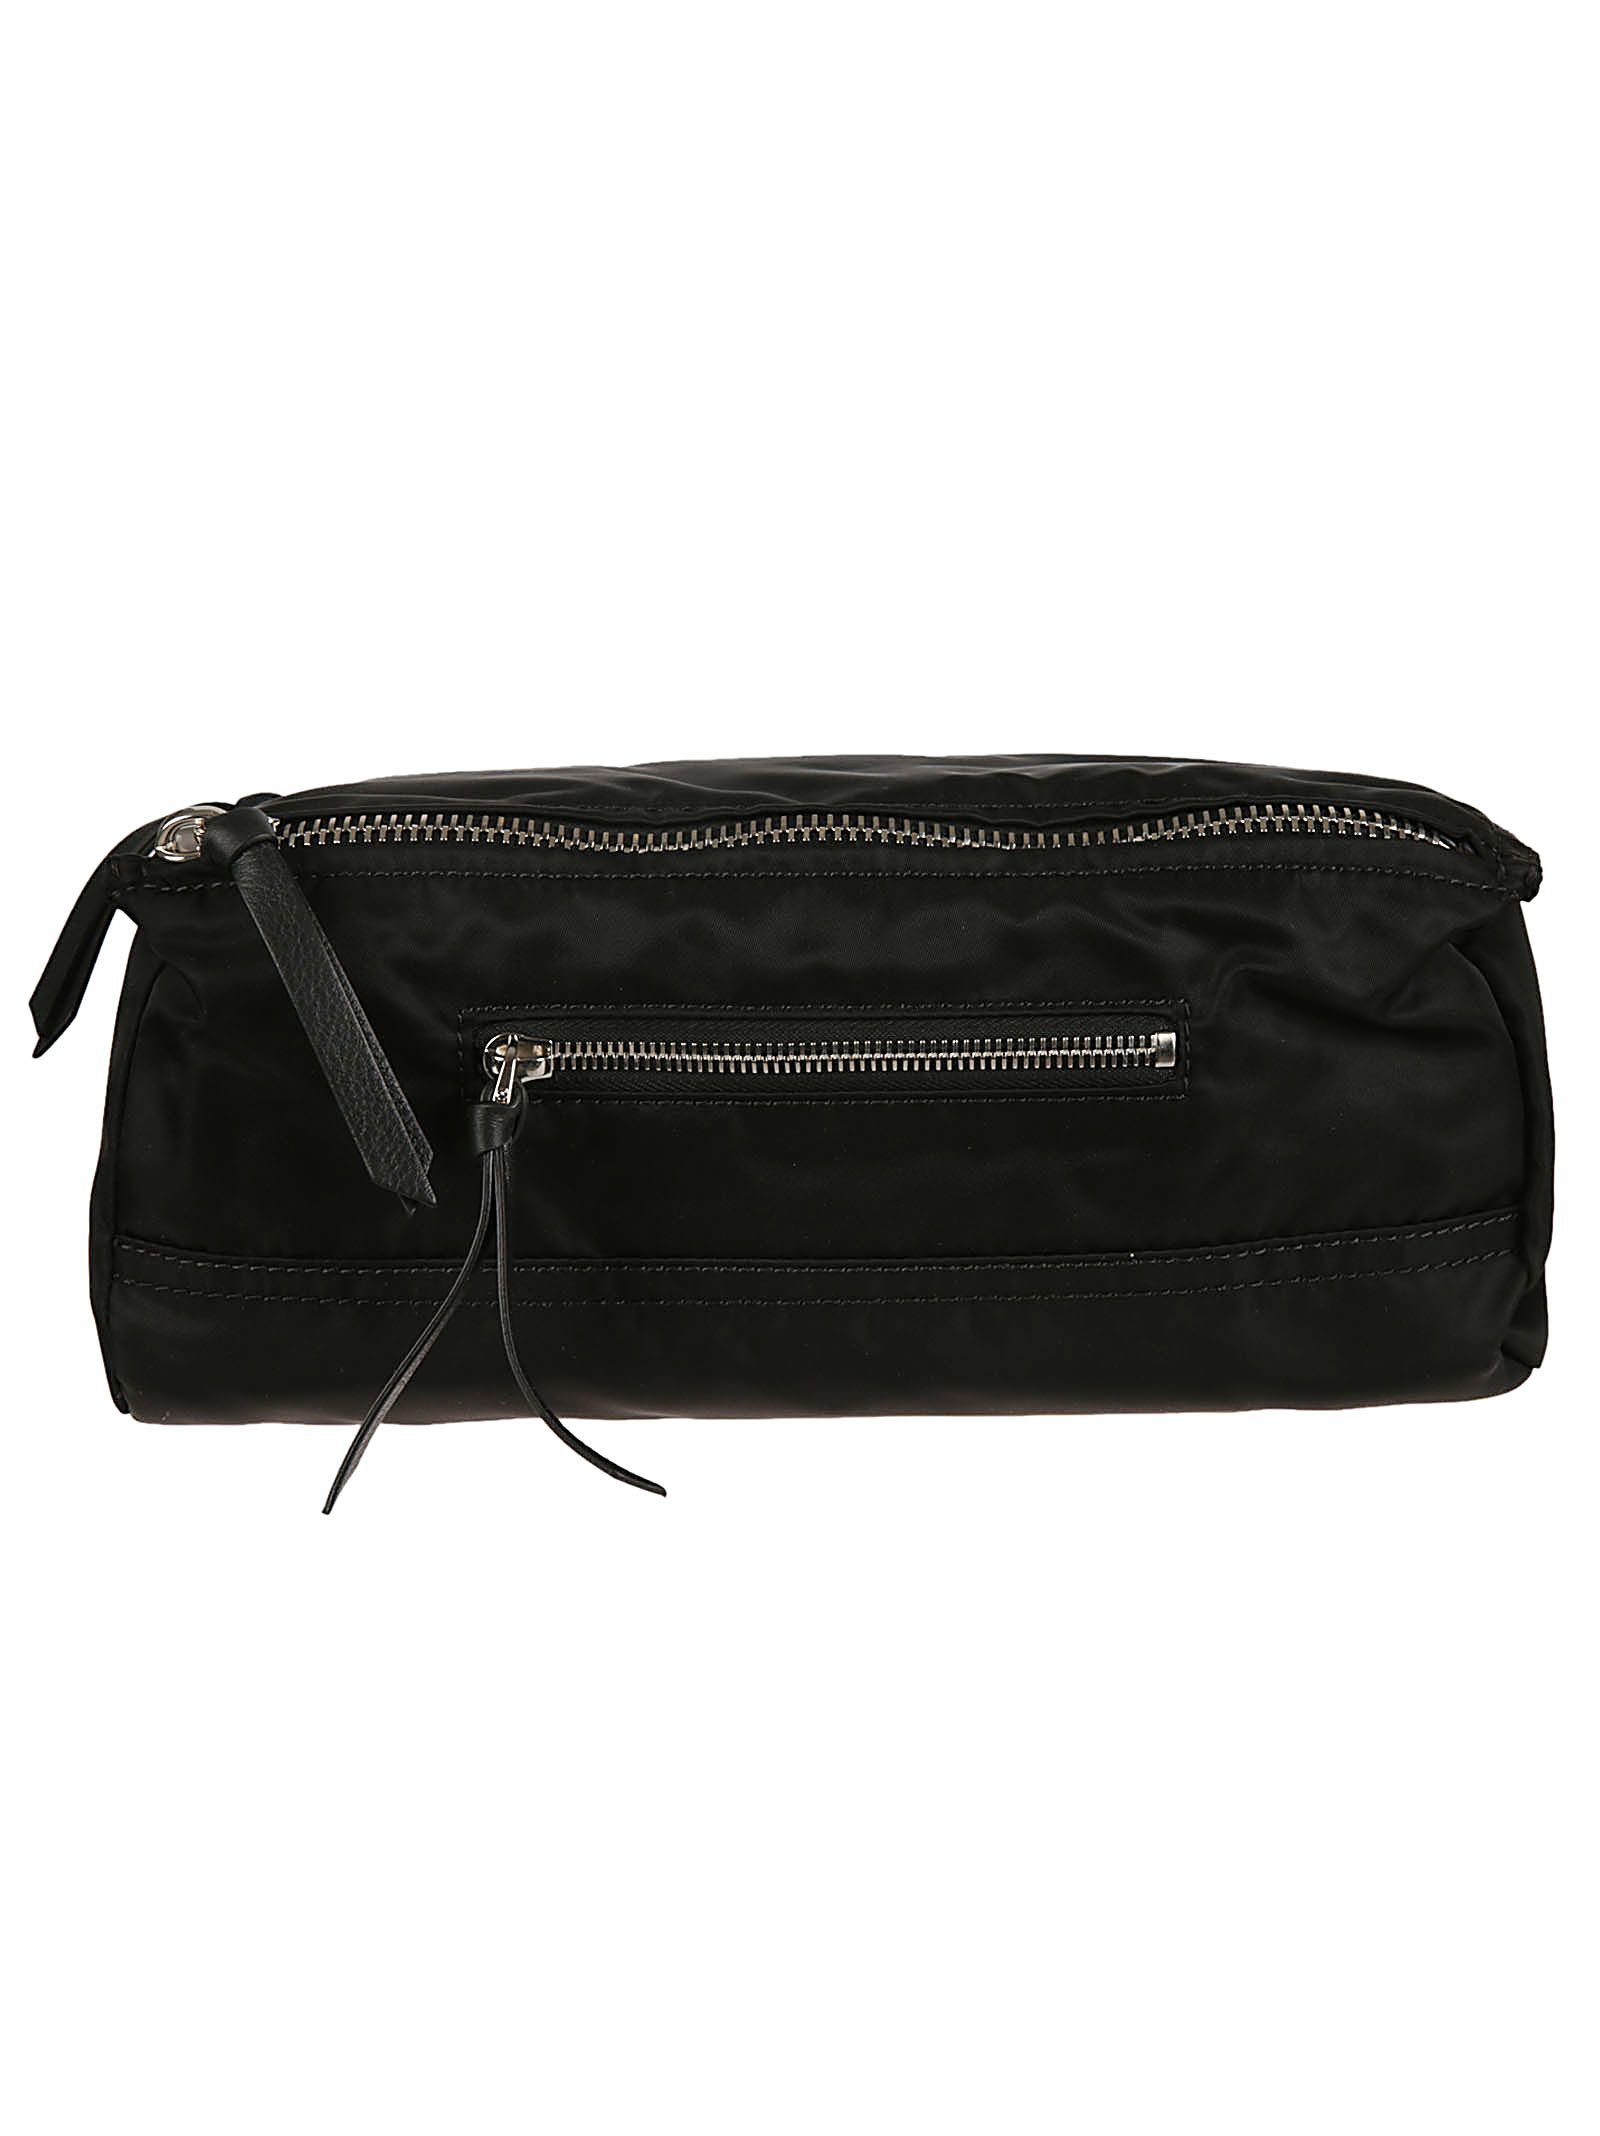 0515ea0821f5 Givenchy Givenchy Pandora Messenger Belt Bag - Black - 10801955 ...